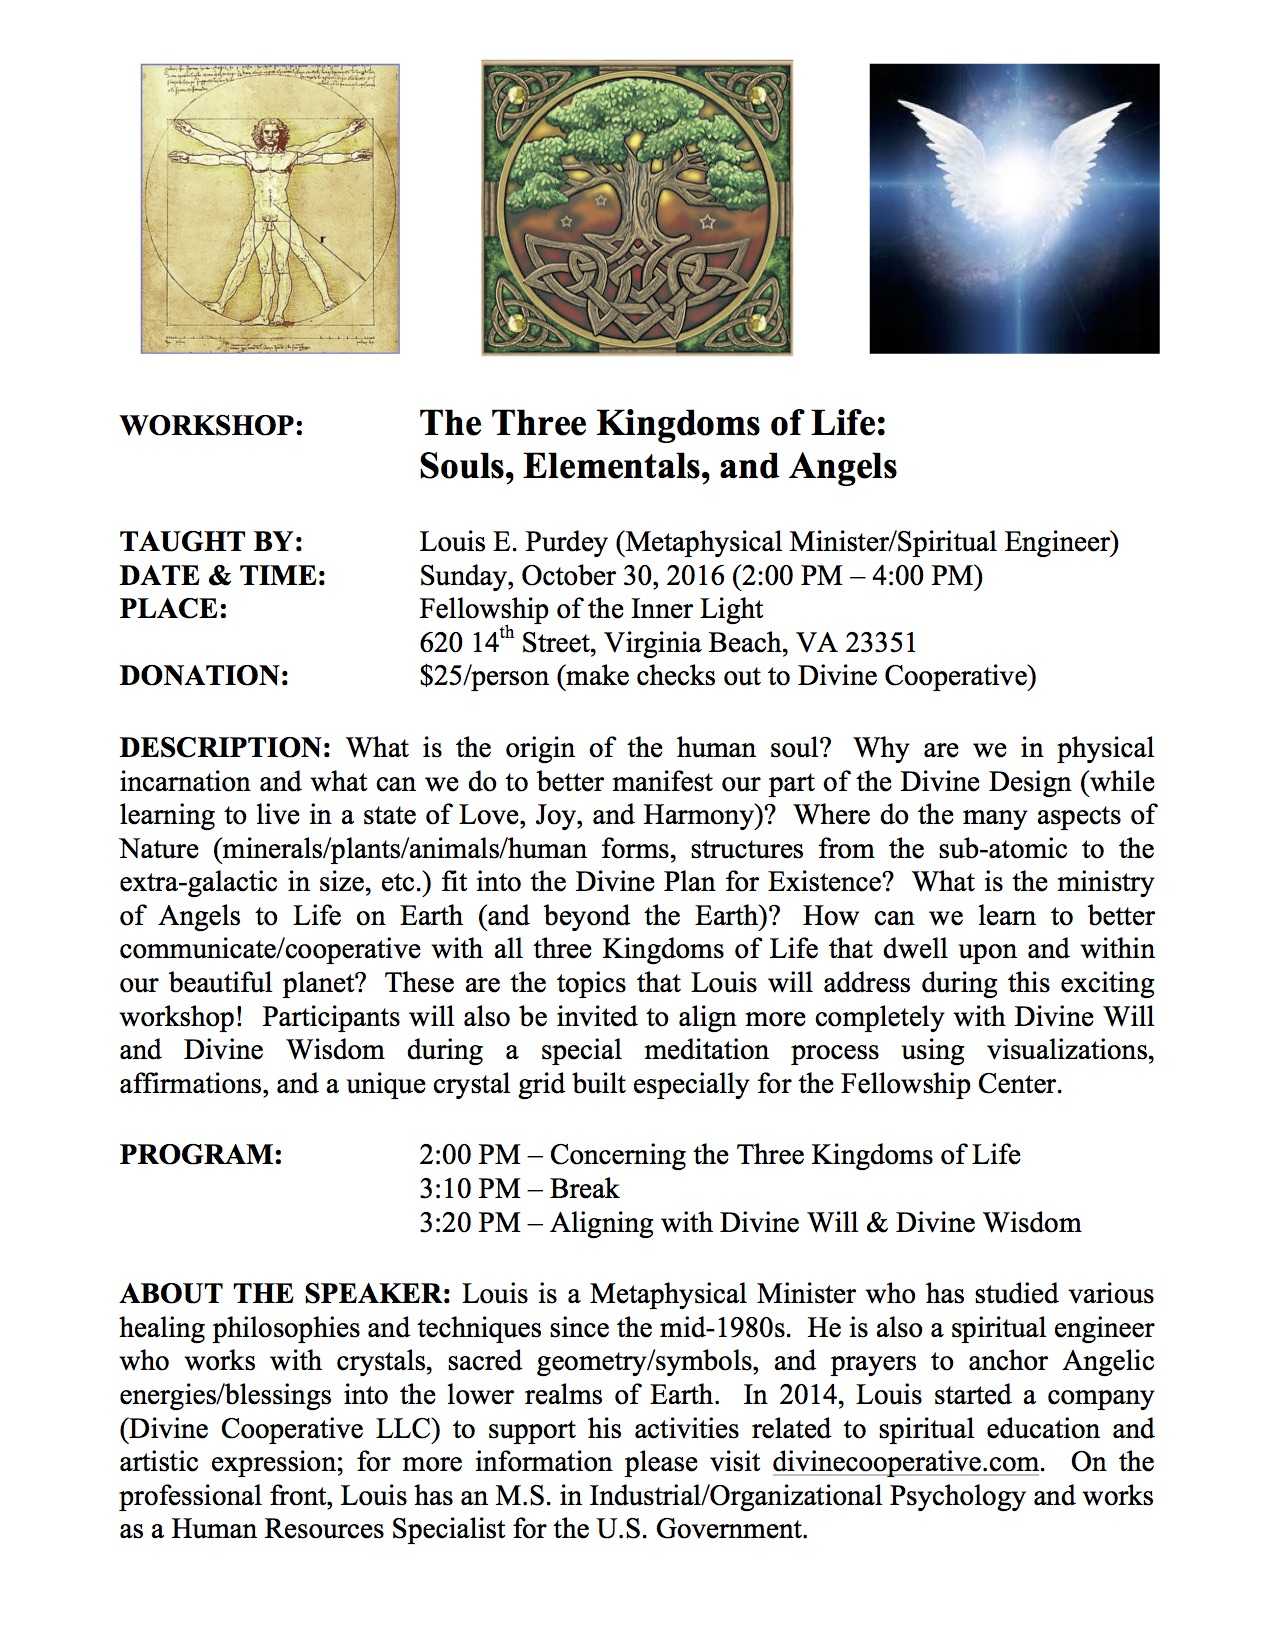 Workshop with Louis Purdey: The Three Kingdoms of Life: Souls, Elementals and Angels